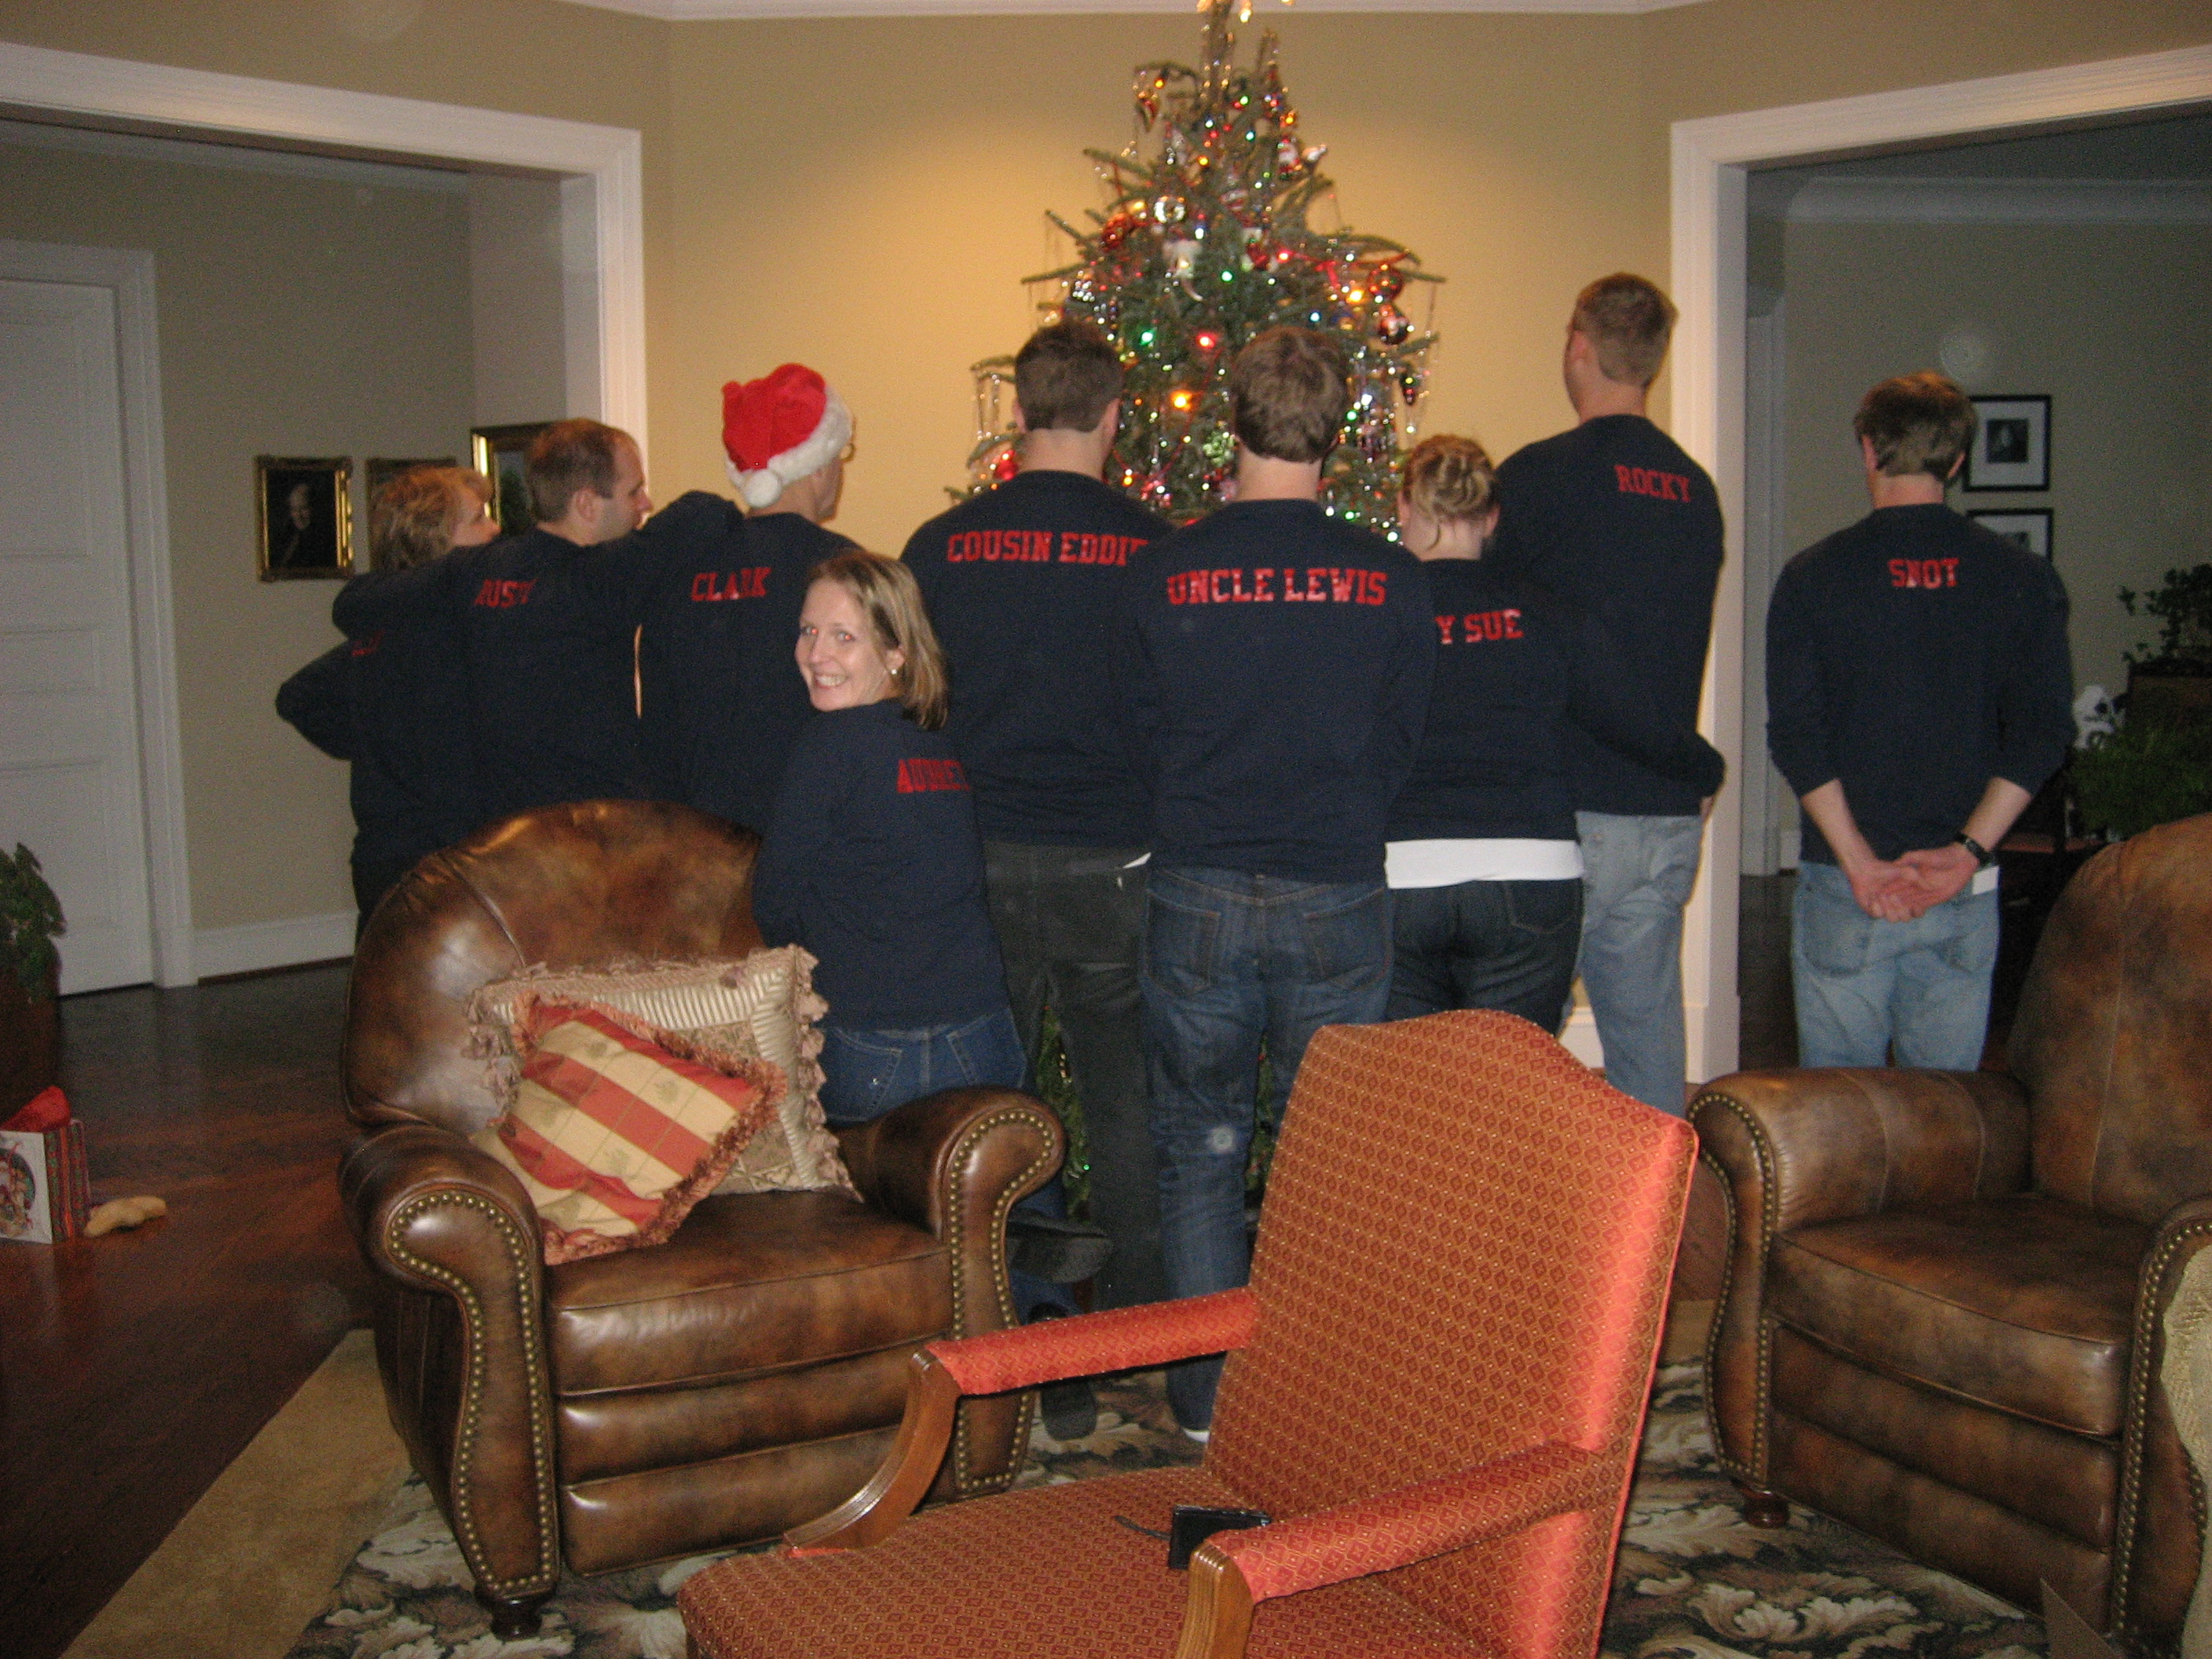 gris wallaces christmas vacation 2010 t shirt photo - National Lampoons Christmas Vacation Decorations